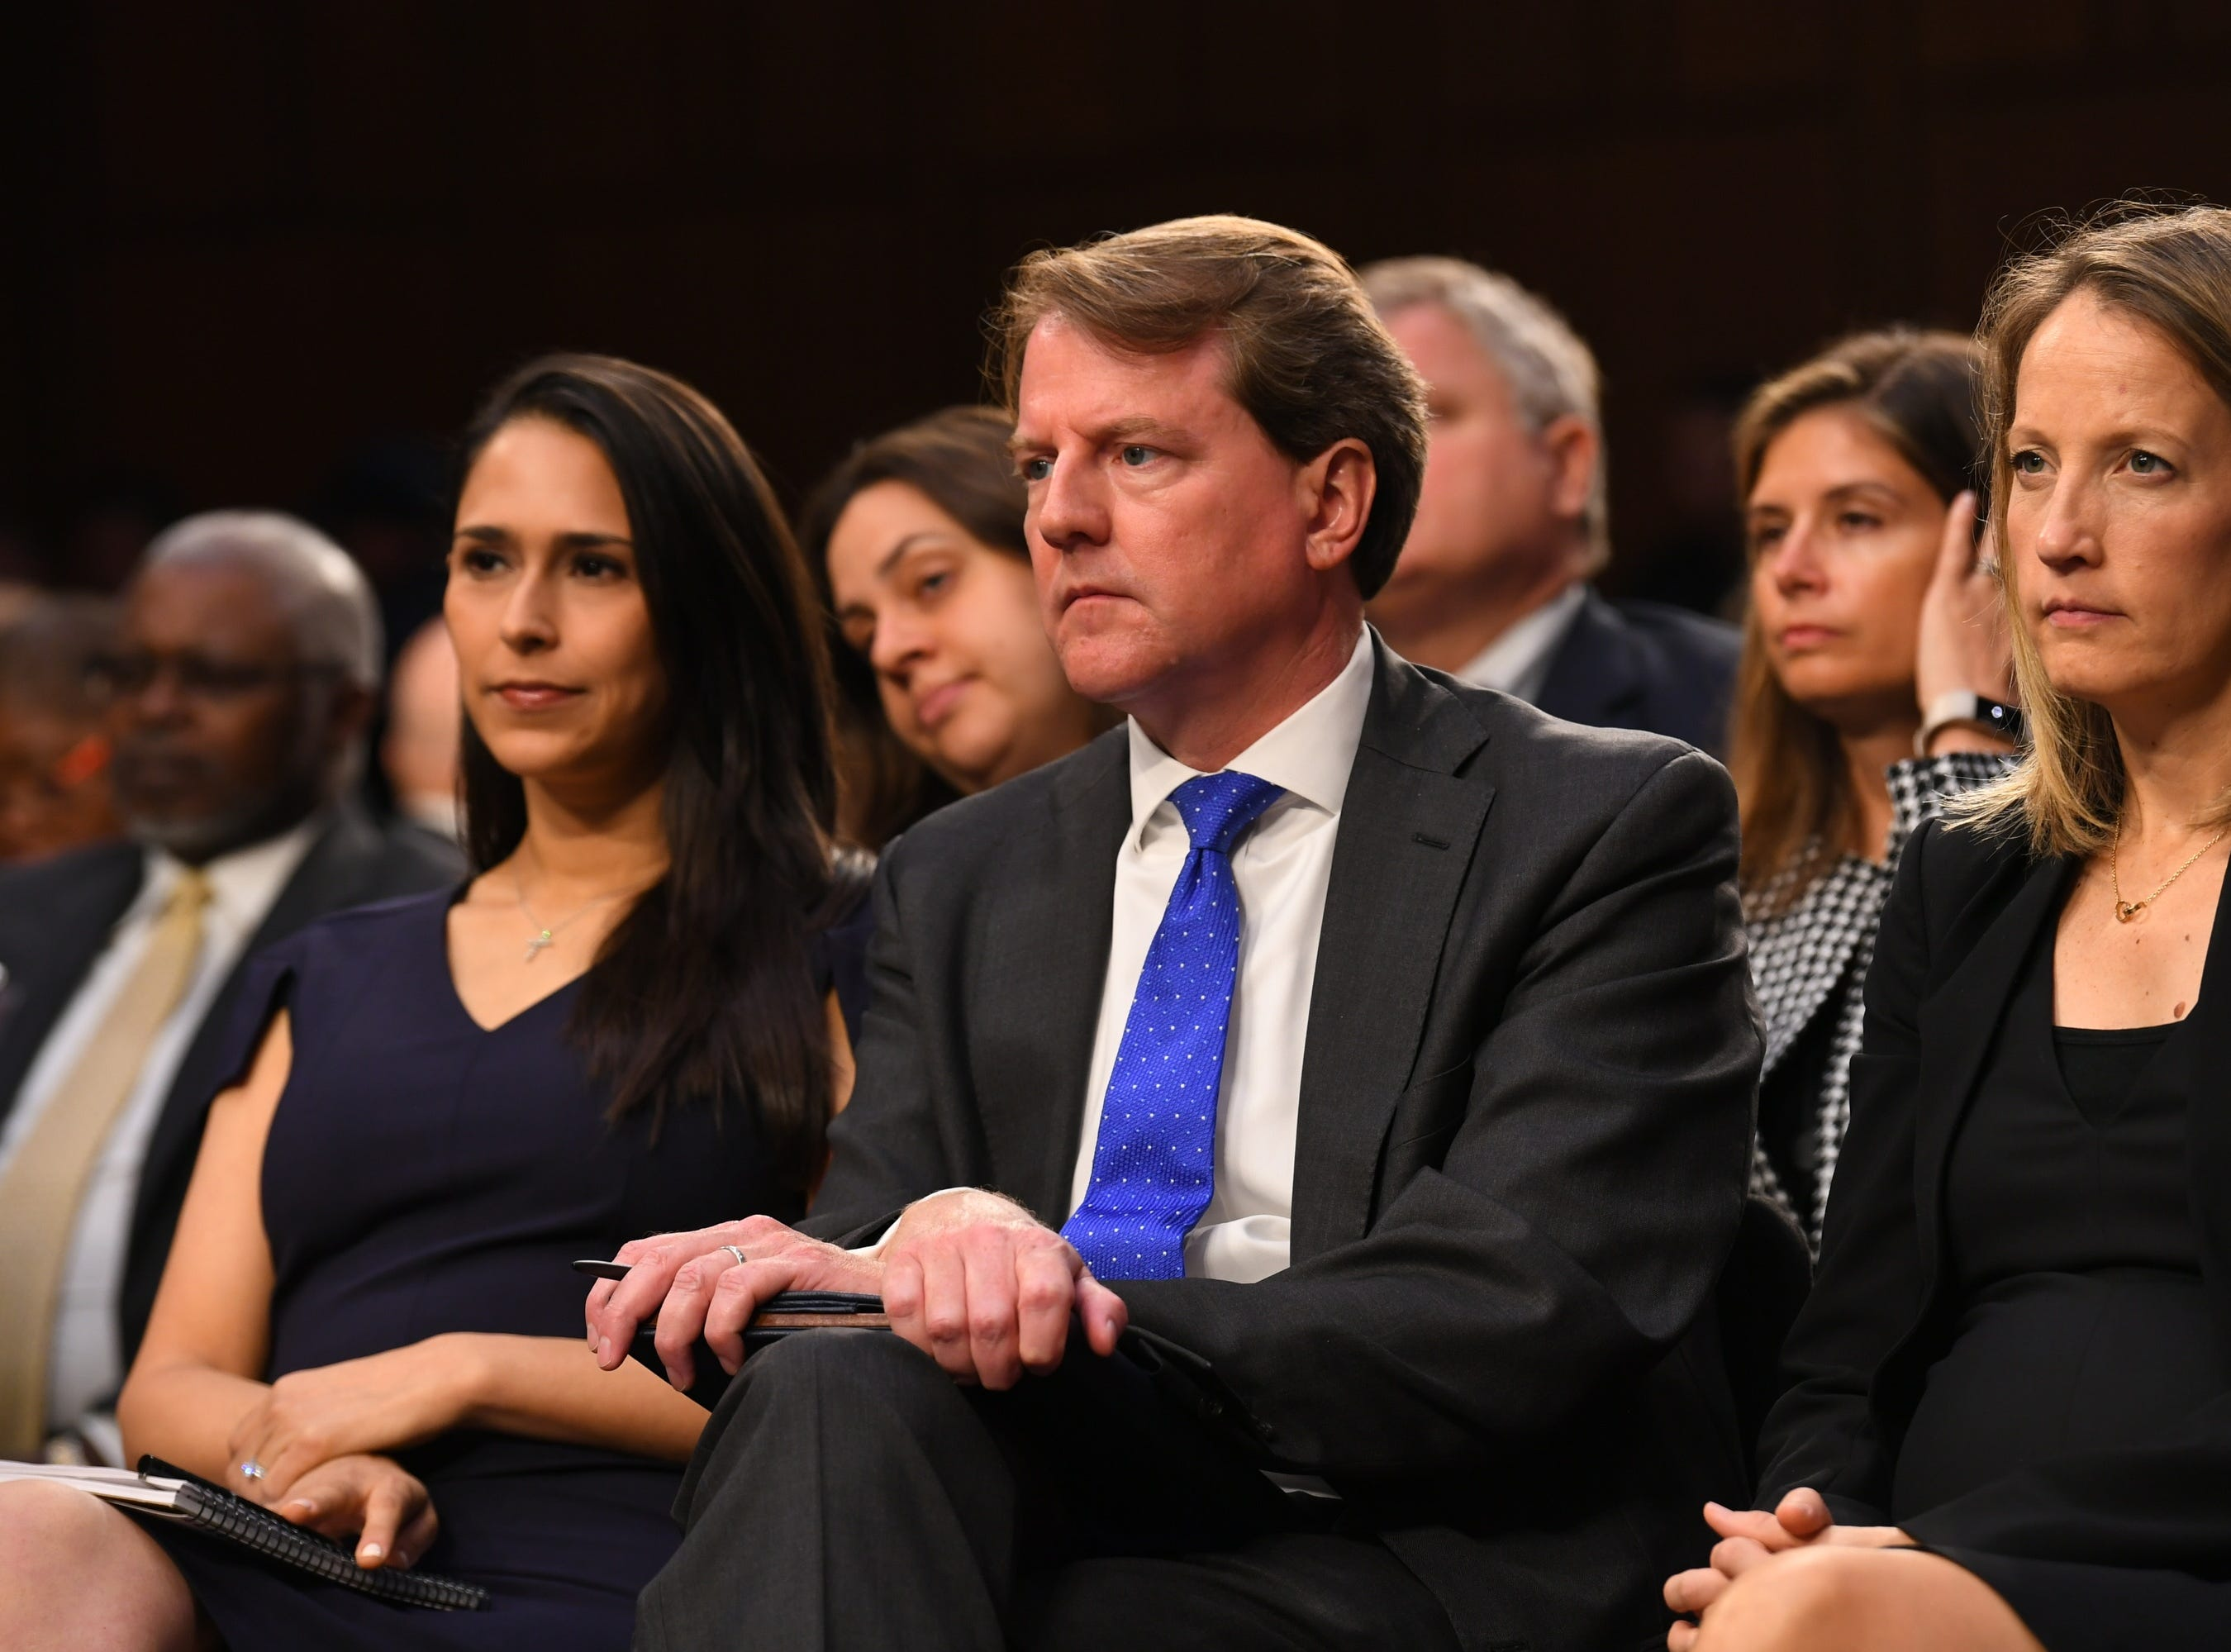 9/4/18 10:47:28 AM -- Washington, DC, U.S.A  - White House Attorney Don McGahn, center, listens during the hearing for Supreme Court Associate Justice nominee Brett Kavanaugh on Sept. 4, 2018 in Washington. Kavanaugh was nominated by President Donald Trump to replace Justice Anthony Kennedy, who retired from the Supreme Court in July.  --    Photo by Jack Gruber, USA TODAY Staff ORG XMIT:  JG 137433 Kavanaugh Confir 9/4/2018 (Via OlyDrop)